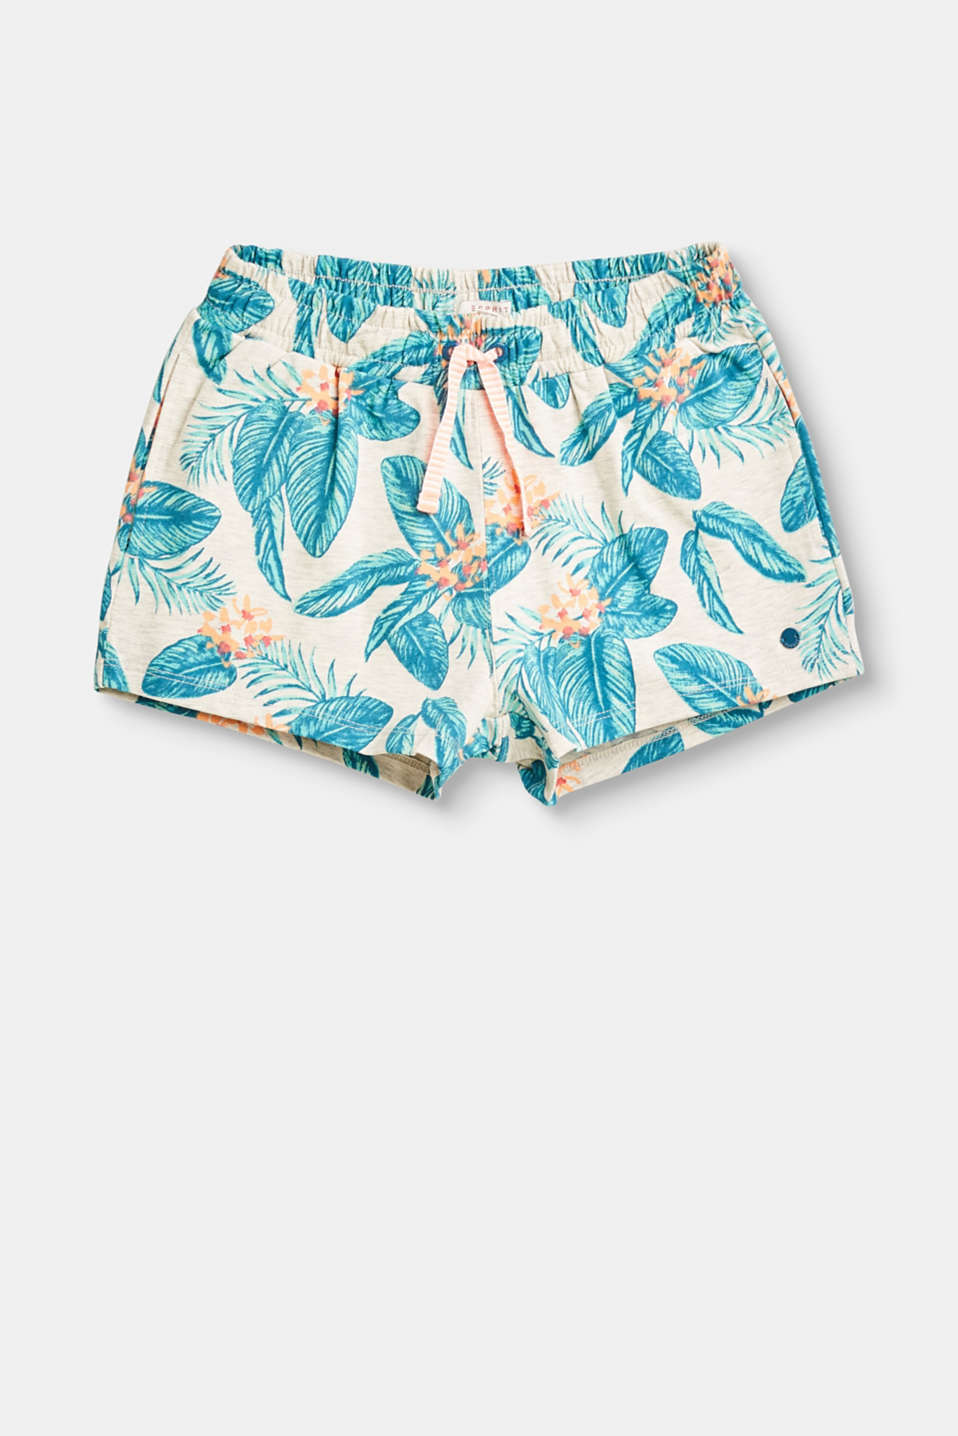 These soft, lightweight jersey shorts featuring a colourful print and decorative drawstring ties radiate great summer vibes.